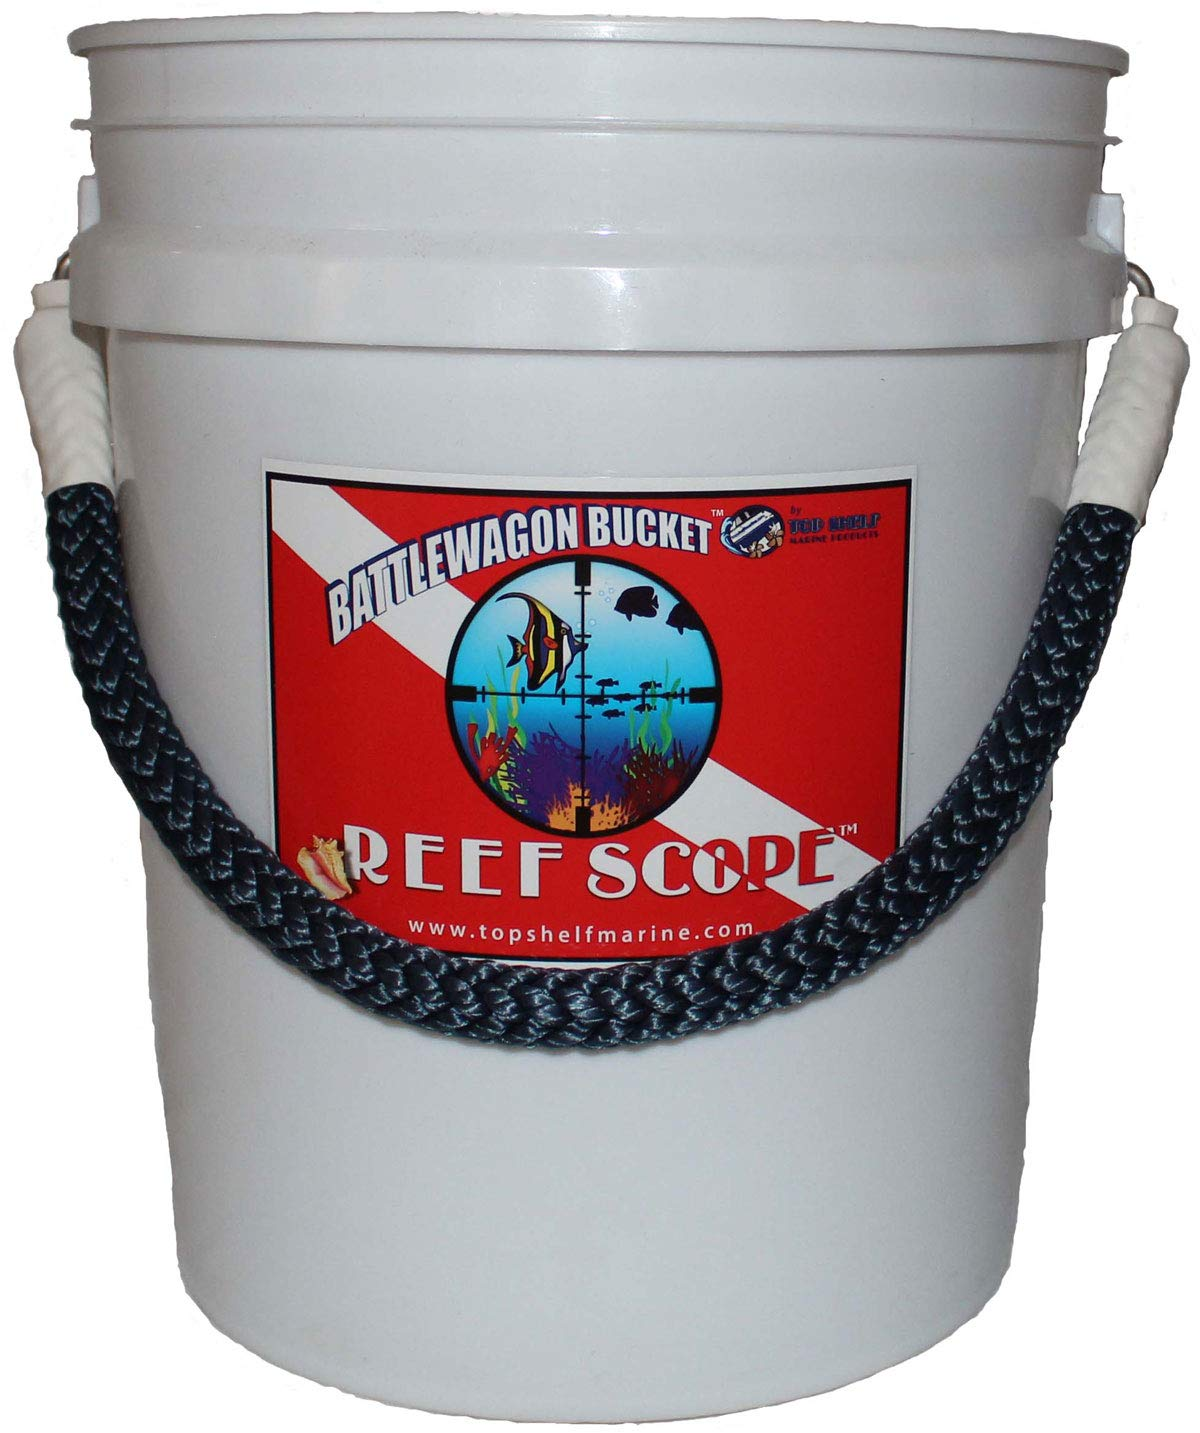 Amazon.com : Reef Scope Underwater View Bucket - White : Sports & Outdoors